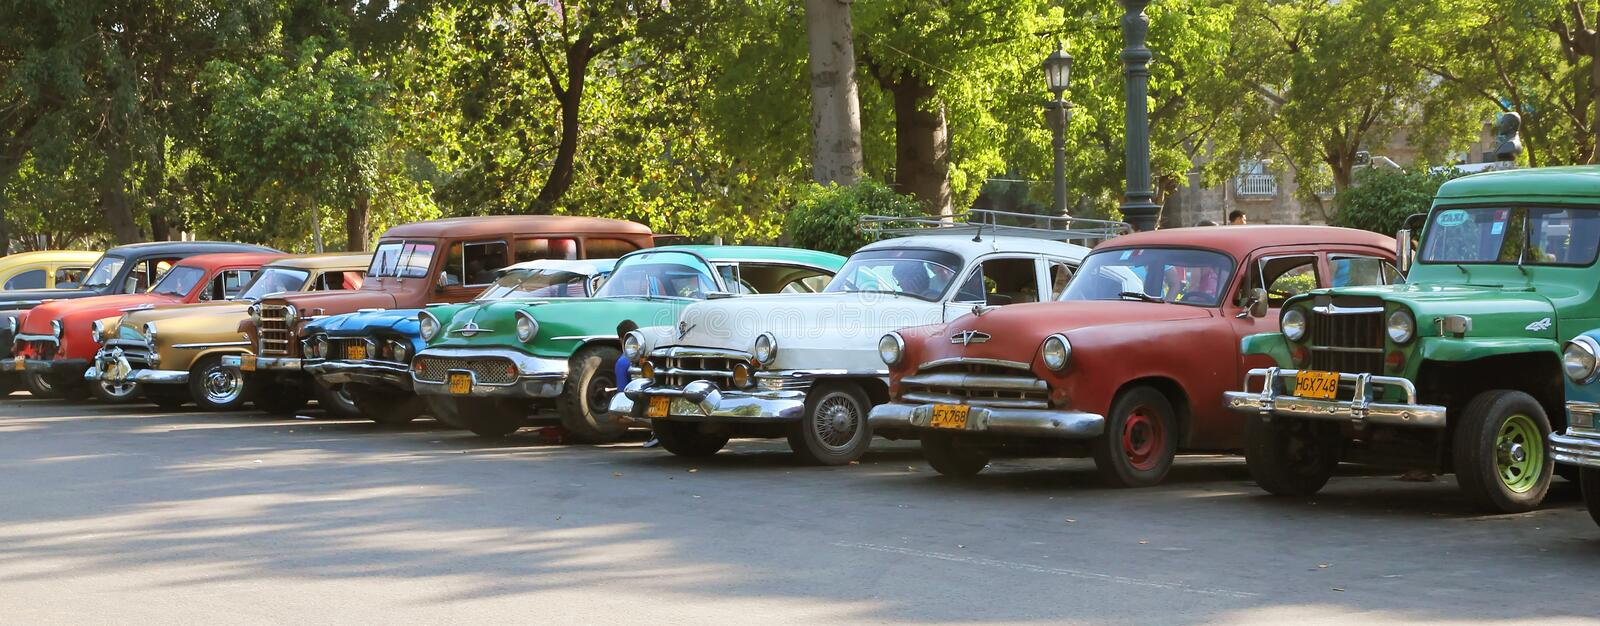 Download Old Cars editorial stock photo. Image of parking, transportation - 24525908